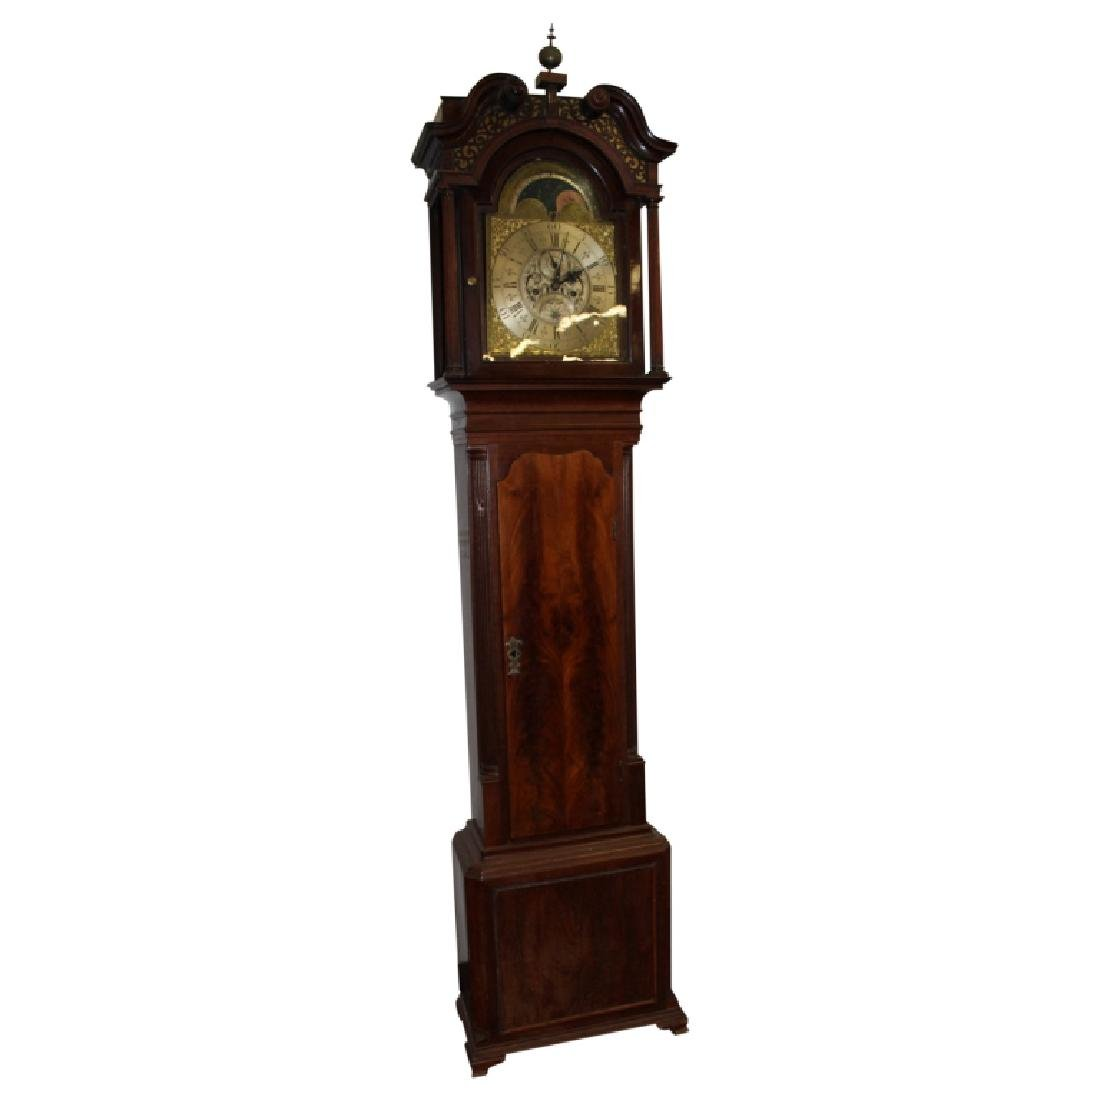 Dollif Rollisson, Halton Grandfather Clock